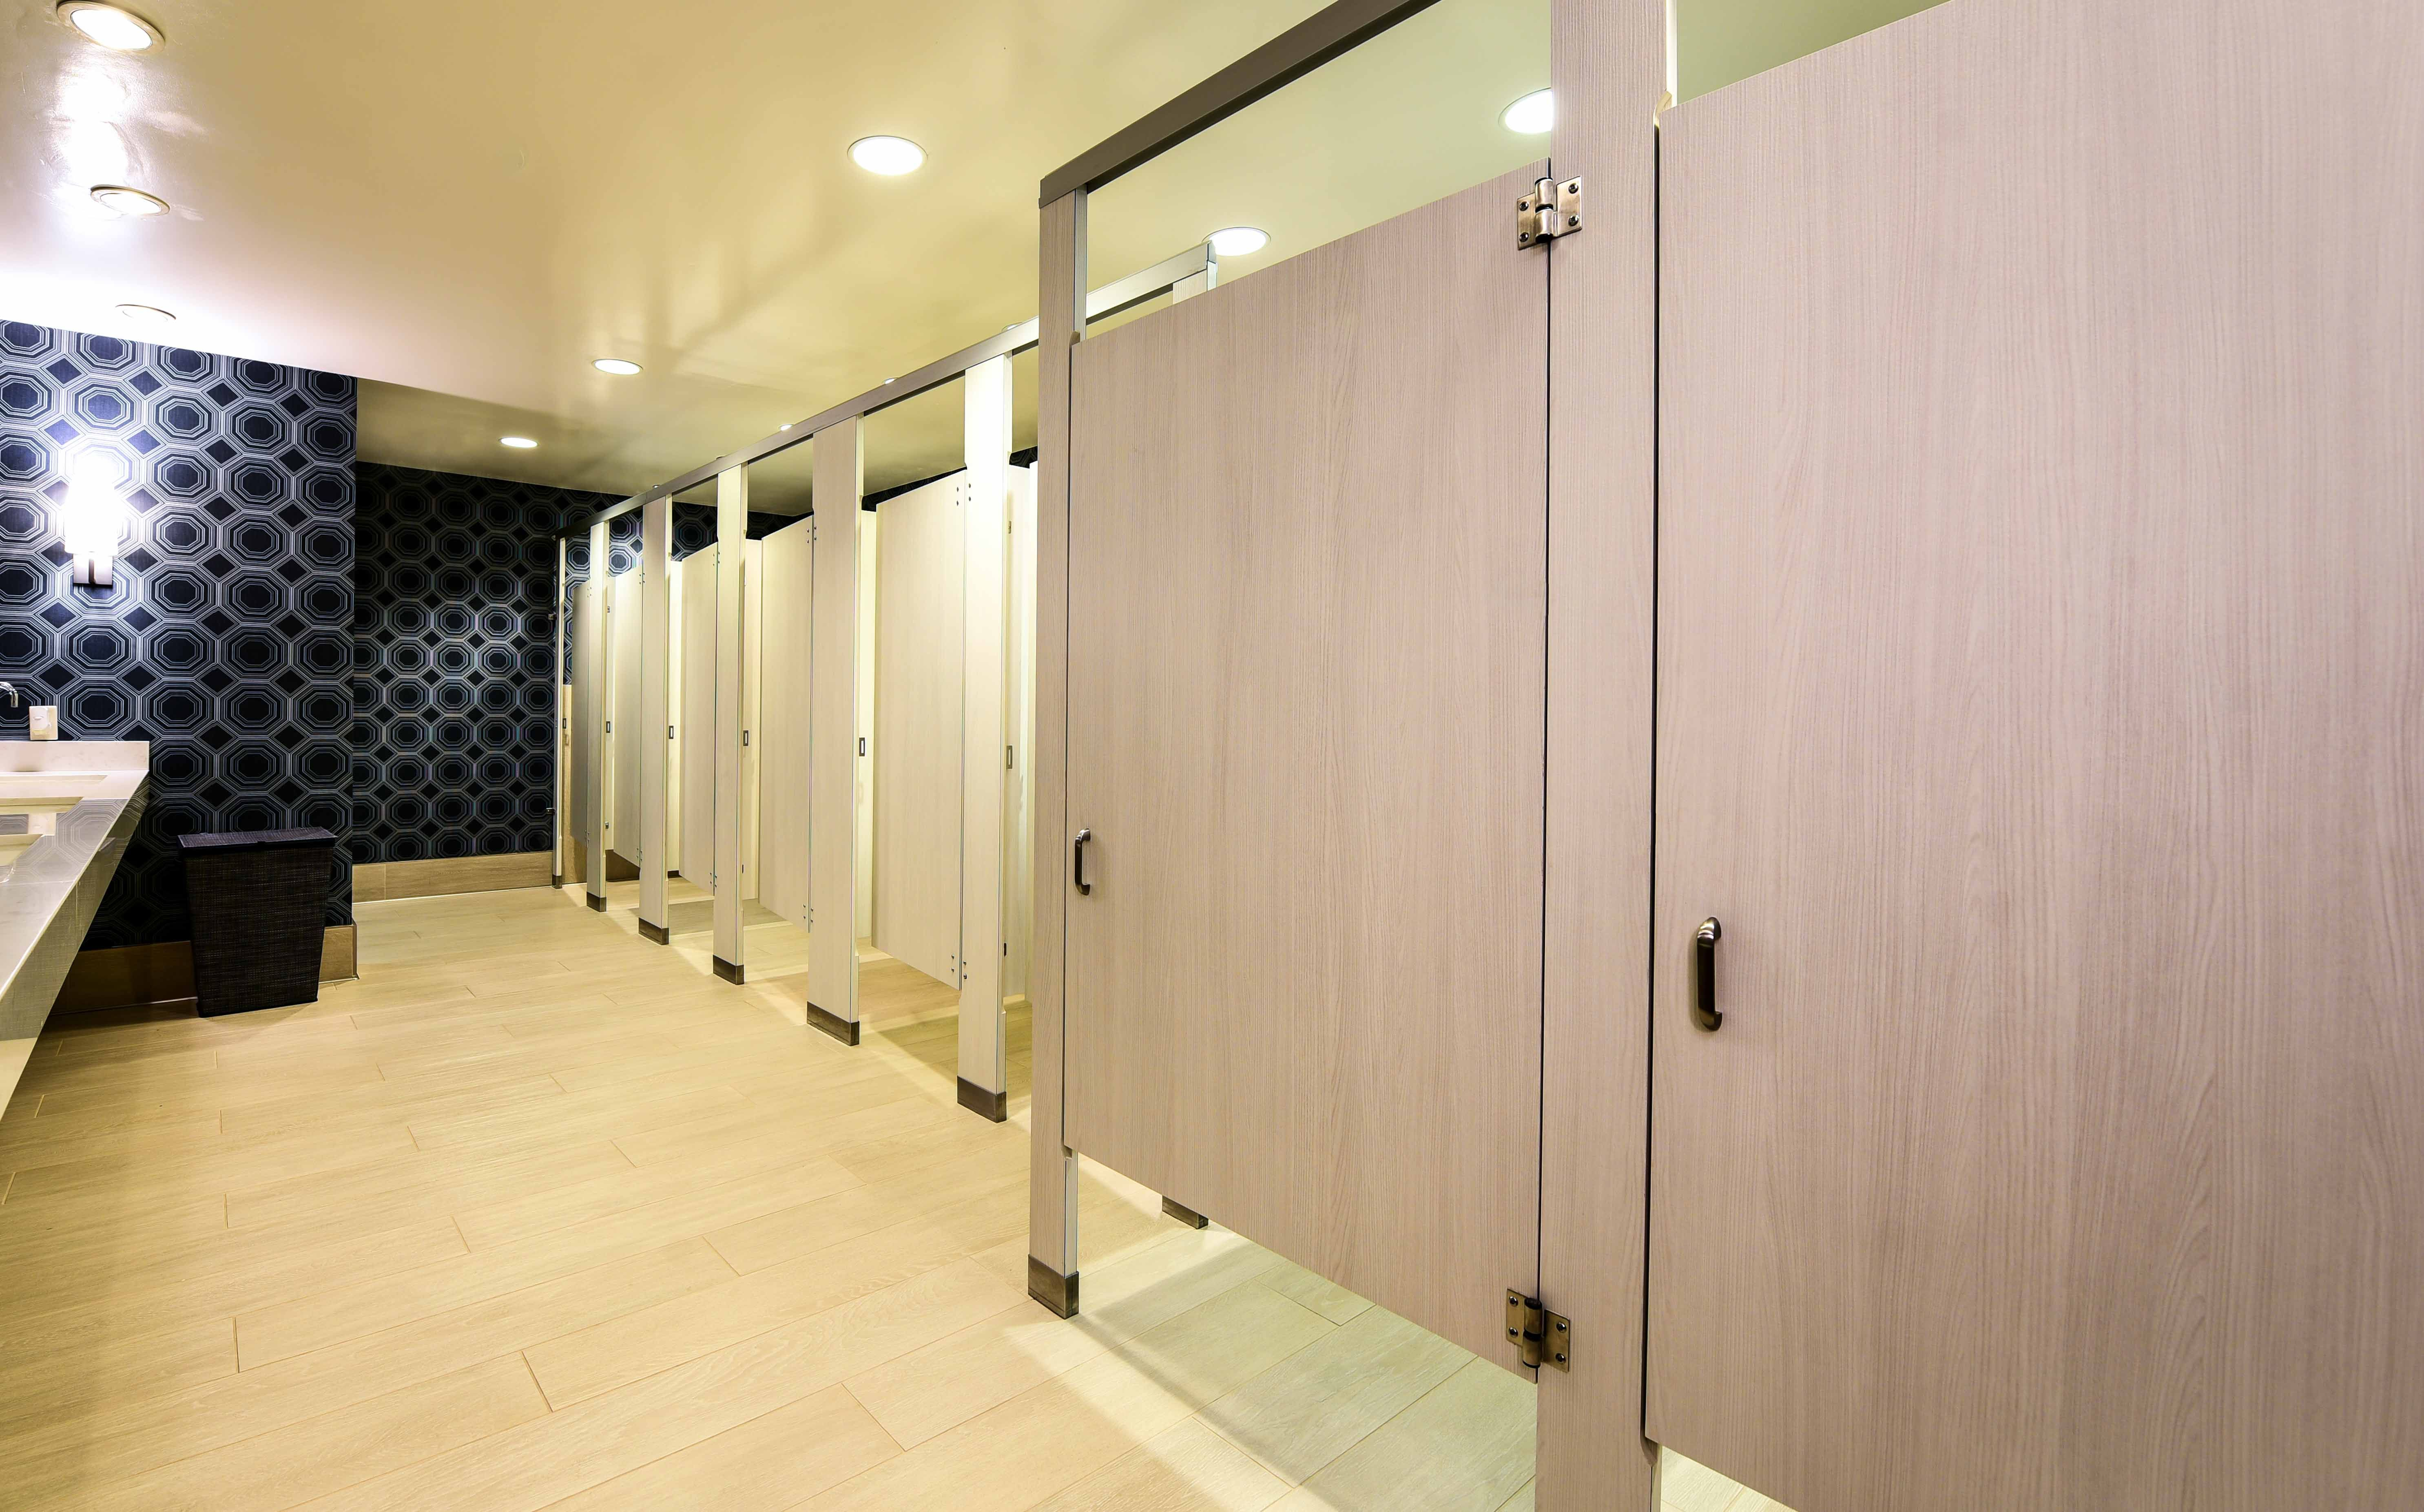 Ironwood Manufacturing Laminate Toilet Partitions With Zero Sightline Doors Add Privacy For A Public C Amazing Bathrooms Bathroom Accessories Bathroom Flooring